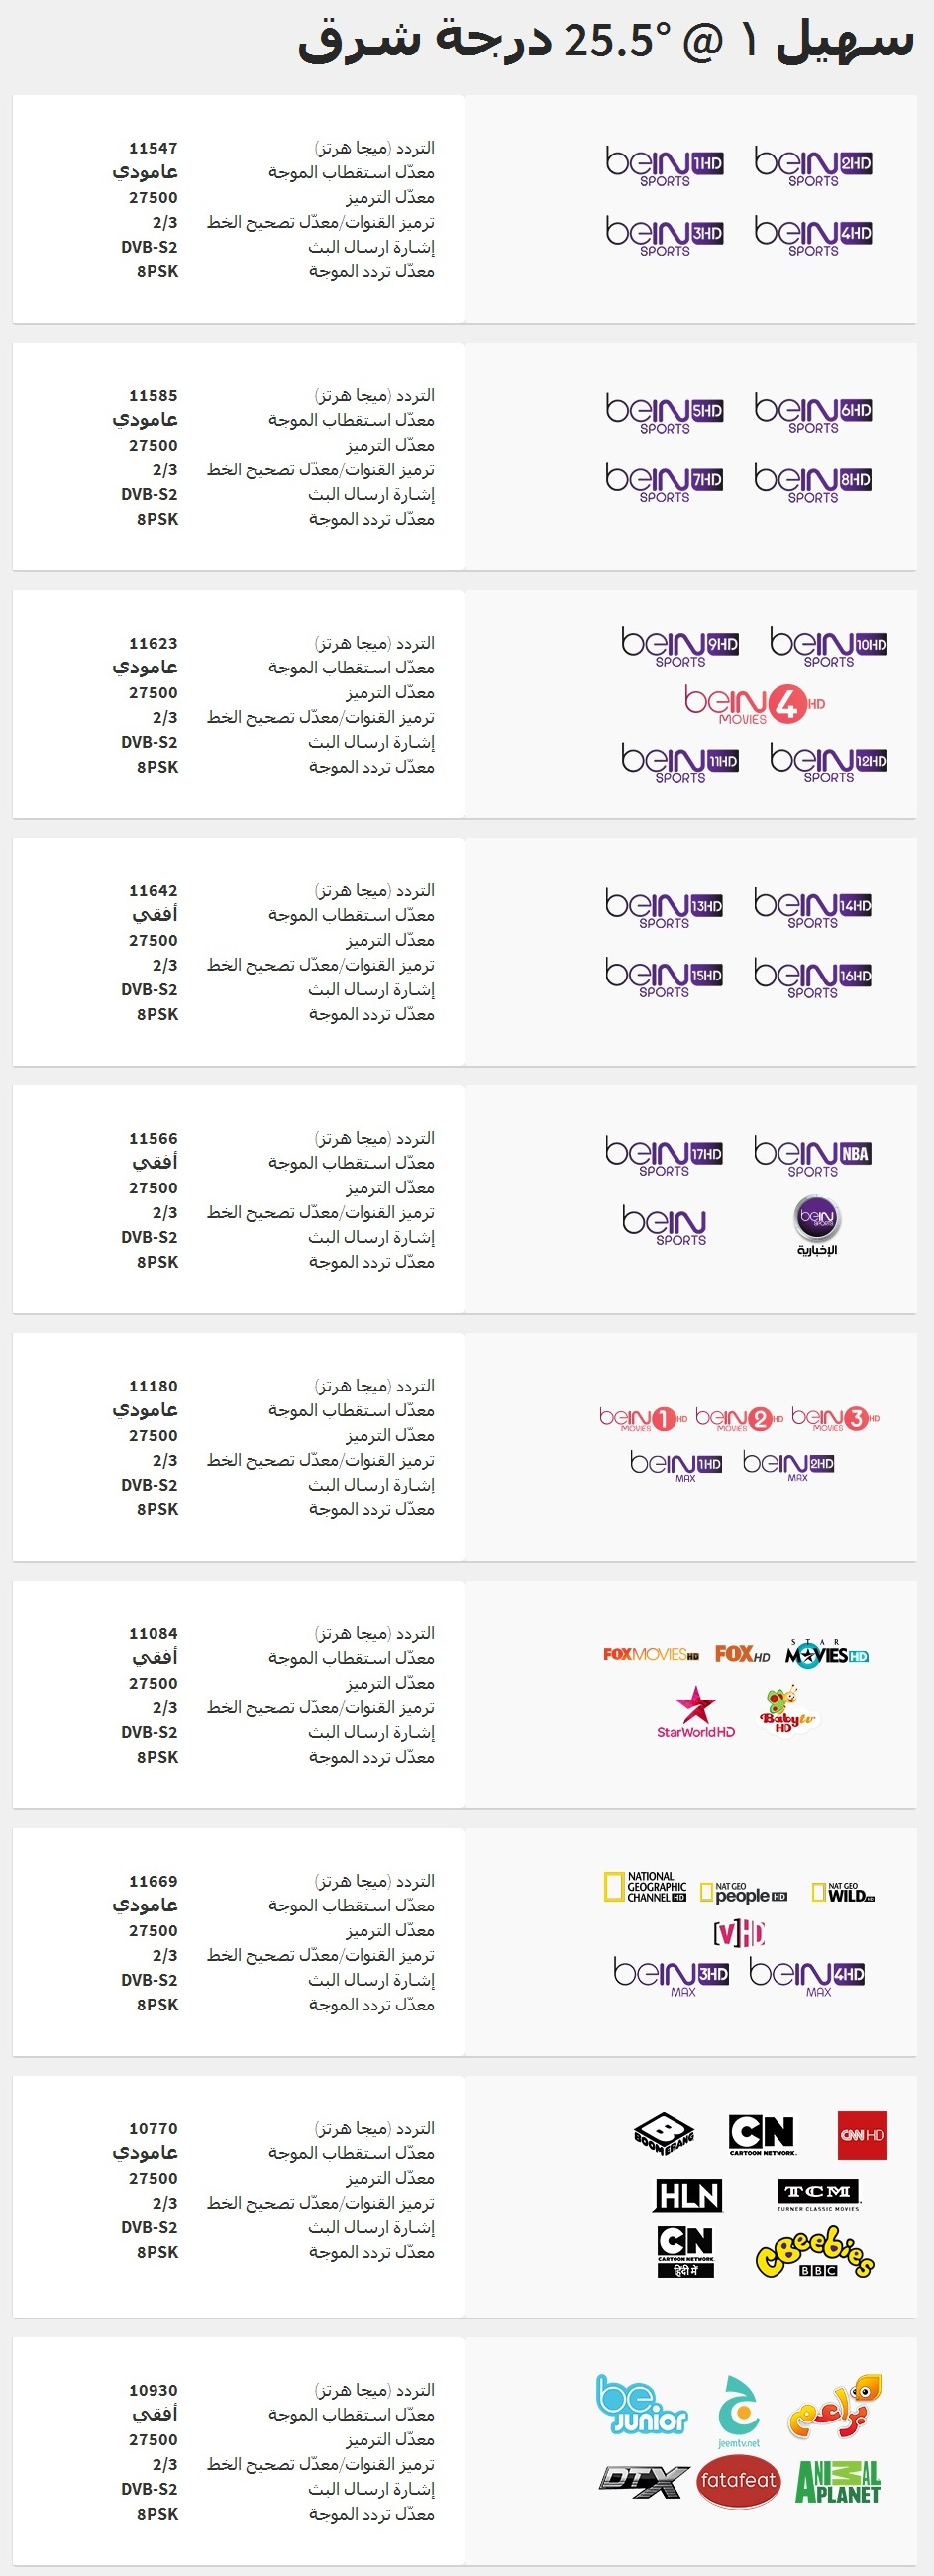 تردد قنوات Bein Sport بى ان سبورت Hd9 Hd10 Hd15 Hd8